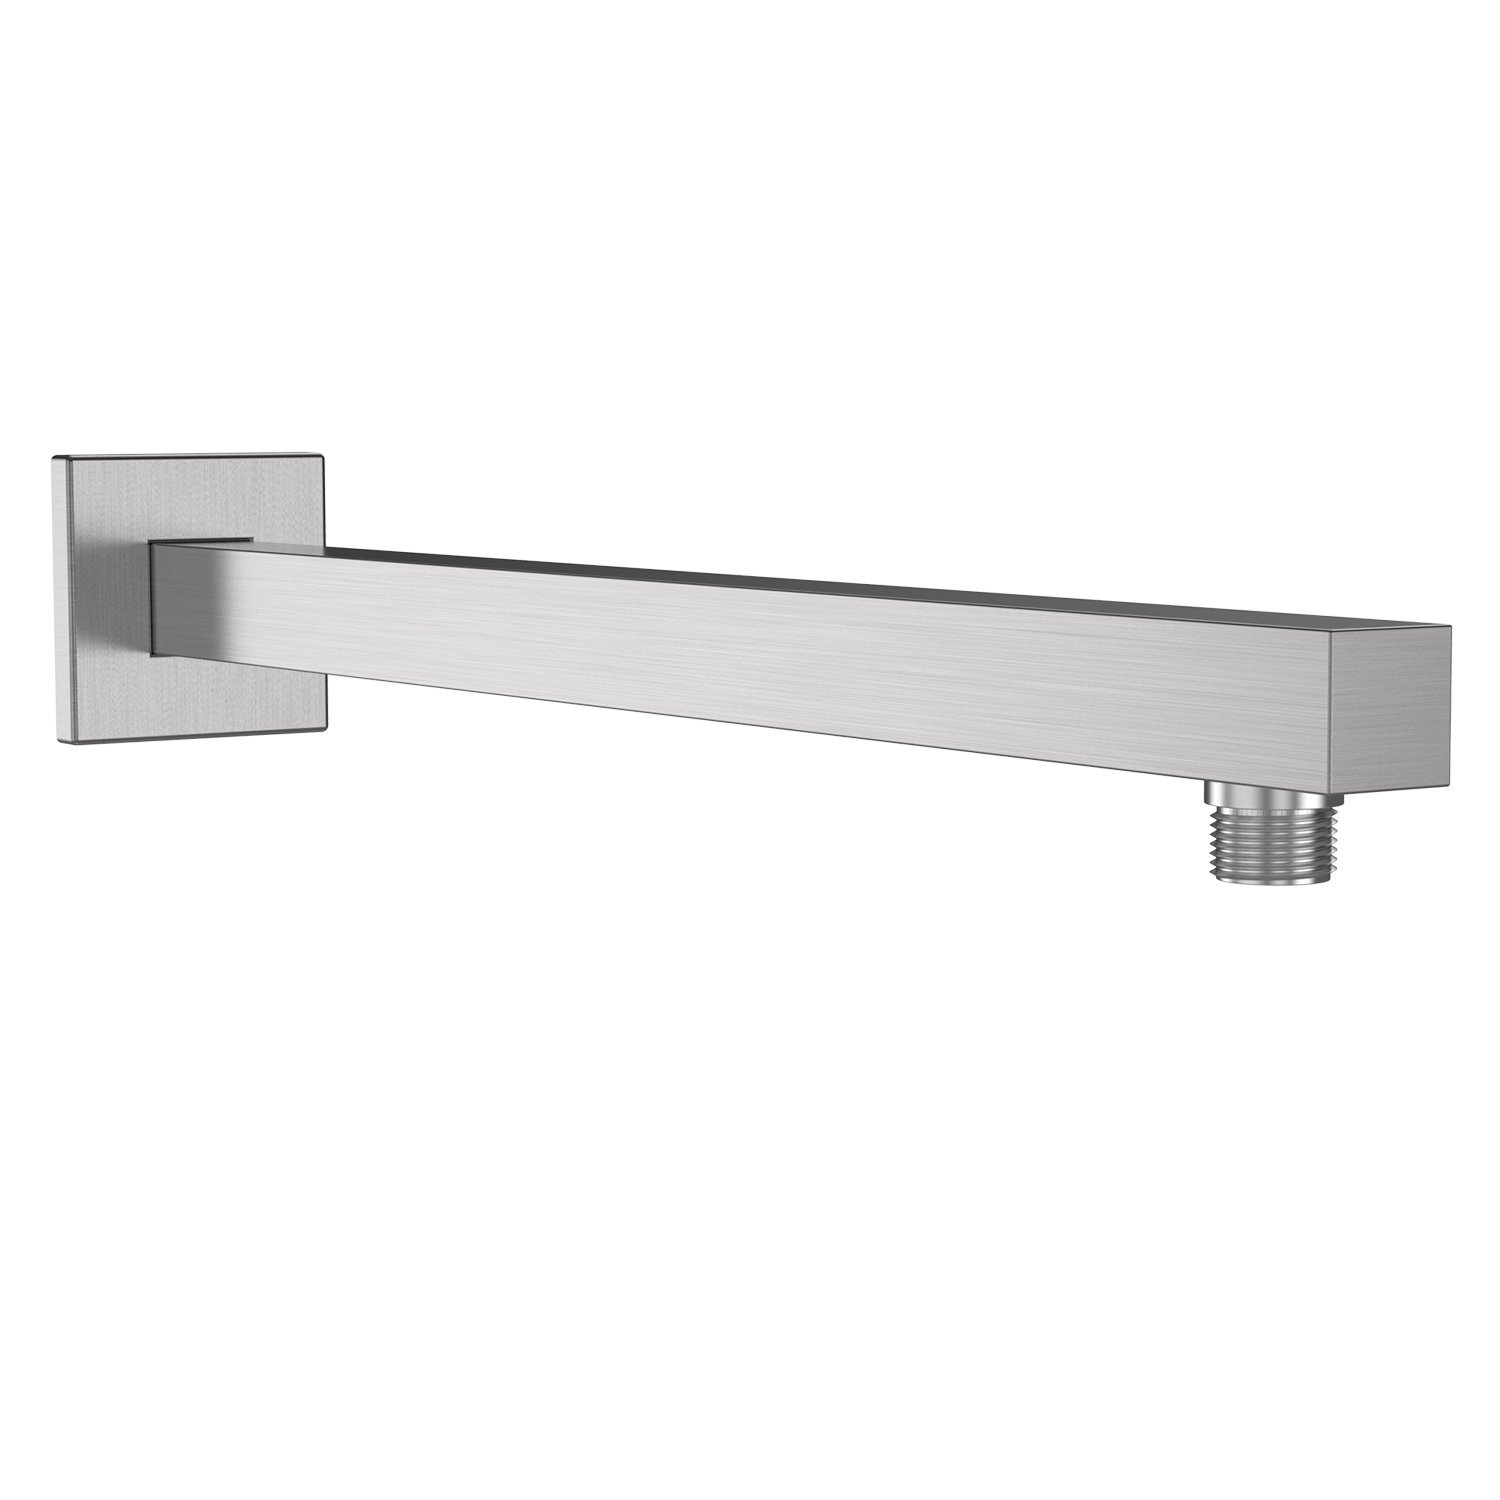 EMBATEHR Extra Long and Thicken Brass 16 Inch Shower Extension Arm,Brushed Nickel Universal Shower Straight Wall-Mounted Shower Arm with Flange for 10''/12''/16''/18'' Bathroom Rainfall Showerhead